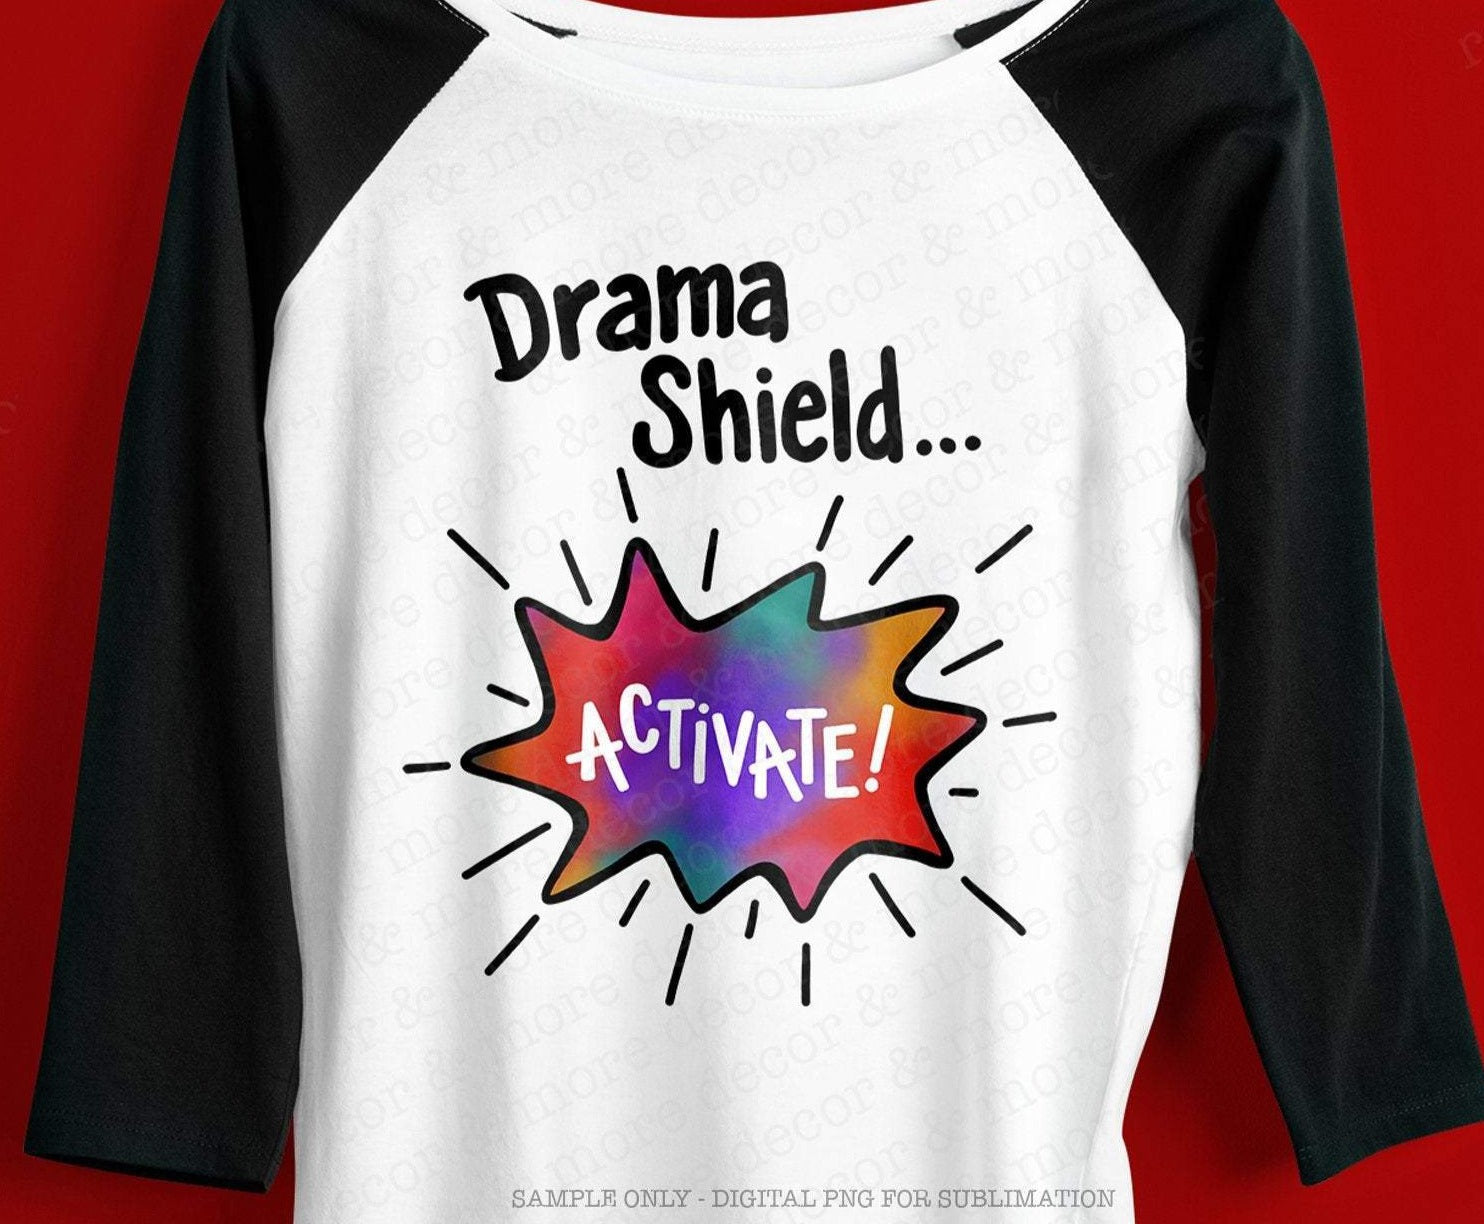 Funny Sublimation Digital Download, Funny Mom Saying Sublimation File, Funny png File for Sublimation, Drama Shield Activate Sublimation Design